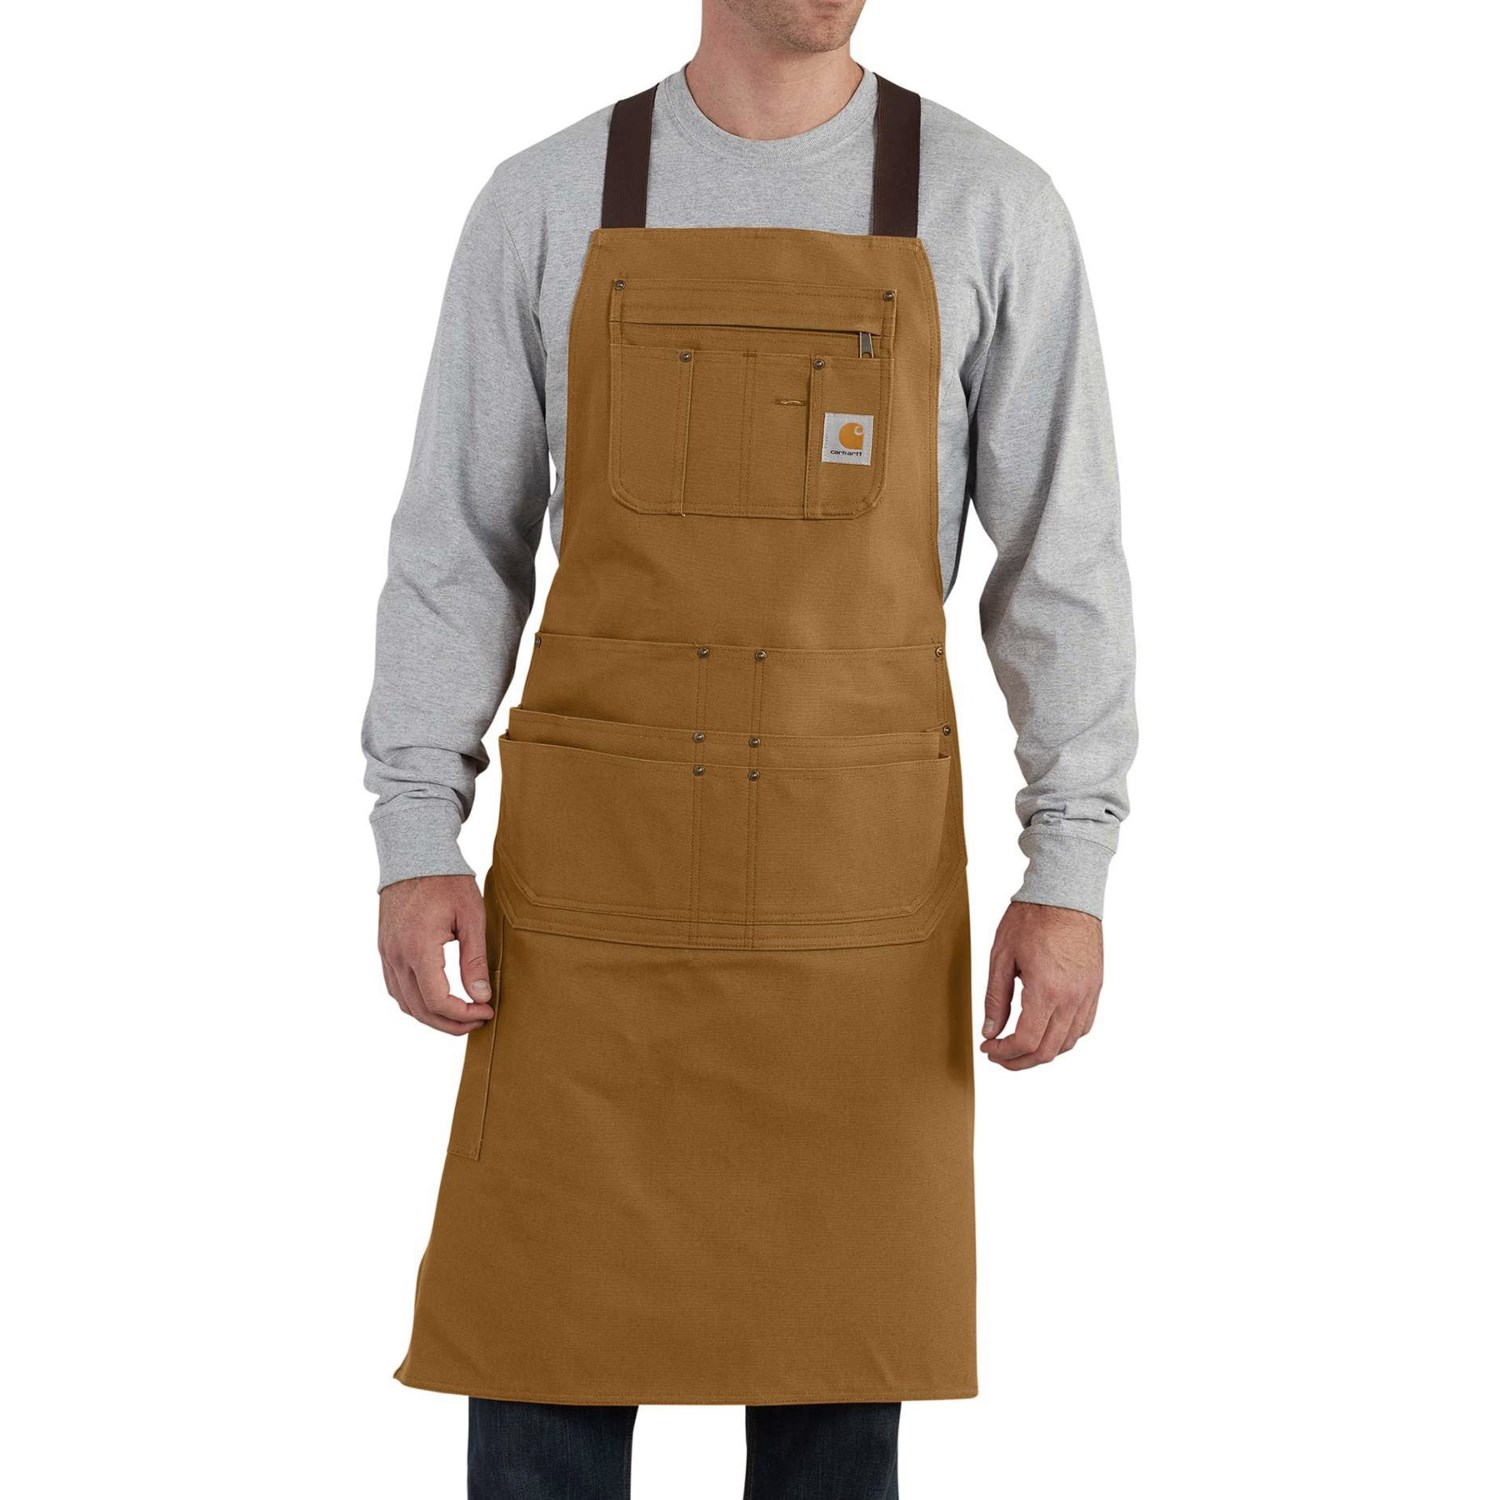 Carhartt Firm Hand Duck Apron For Men